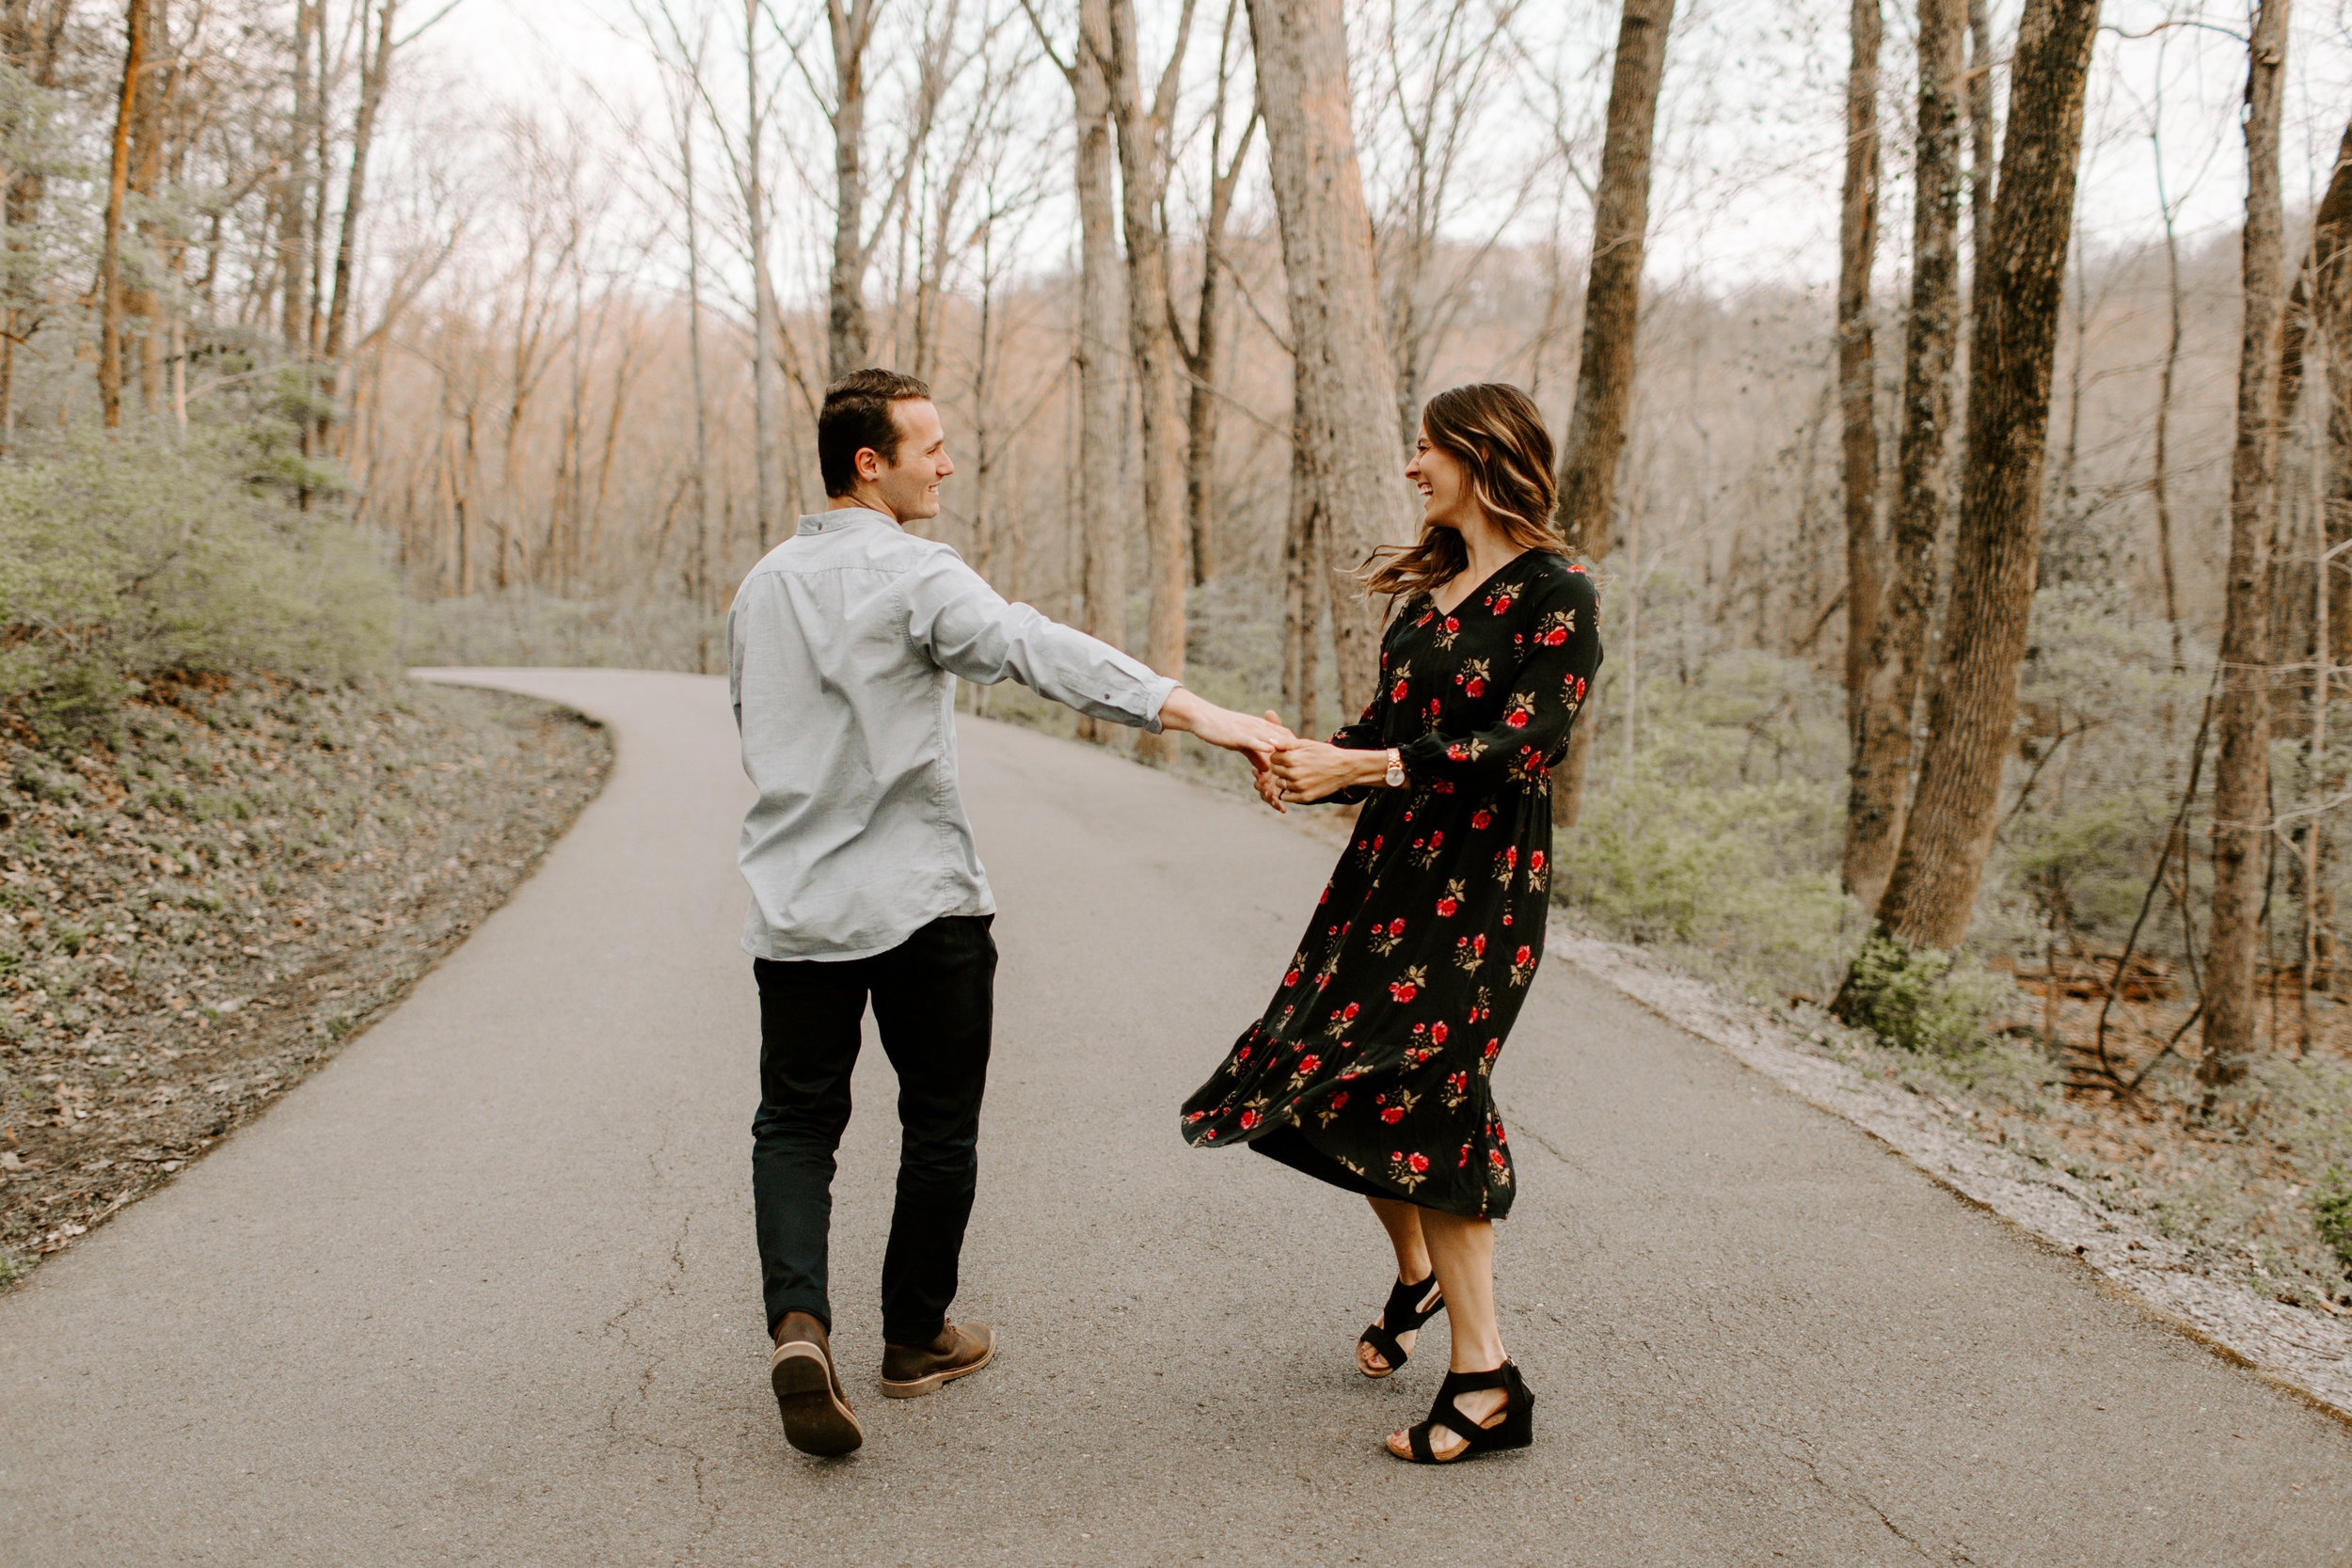 2018.03.16_kayleematt_nashville_engagement_elissavossphotography_previews_26.jpg